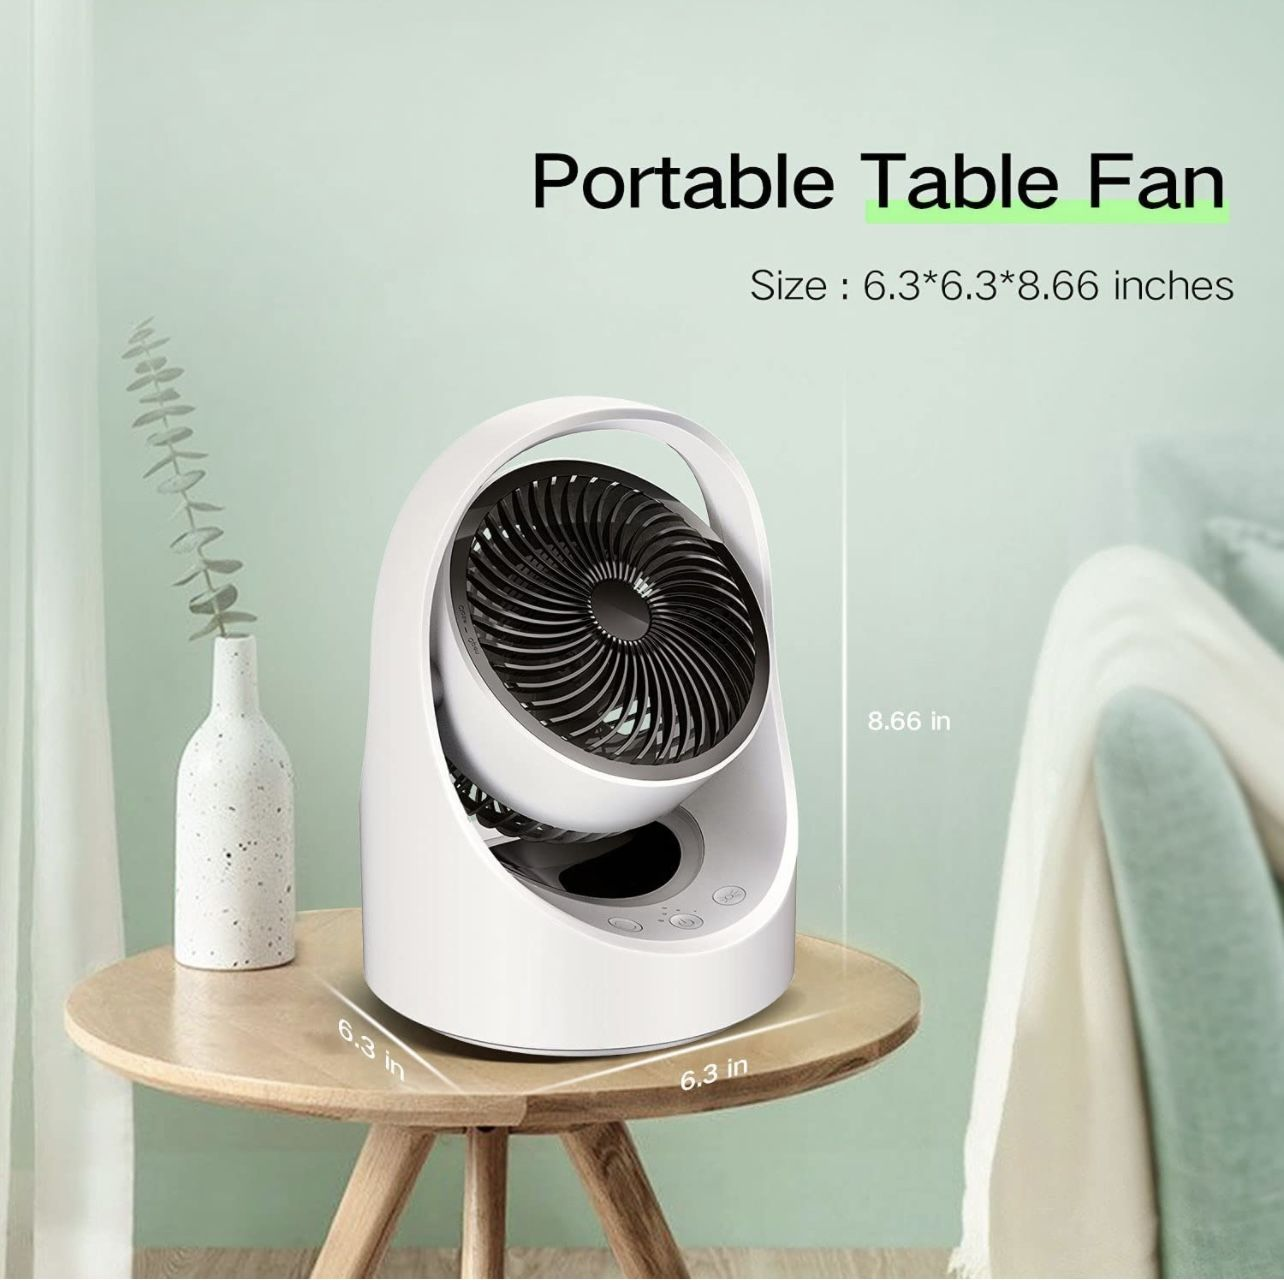 Air Circulator Fan Rechargeable Desk Fan Portable Oscillating Cordless Fan with LED Light 4 Speeds USB Powered Quiet Table Fan for Home Office Bedroom